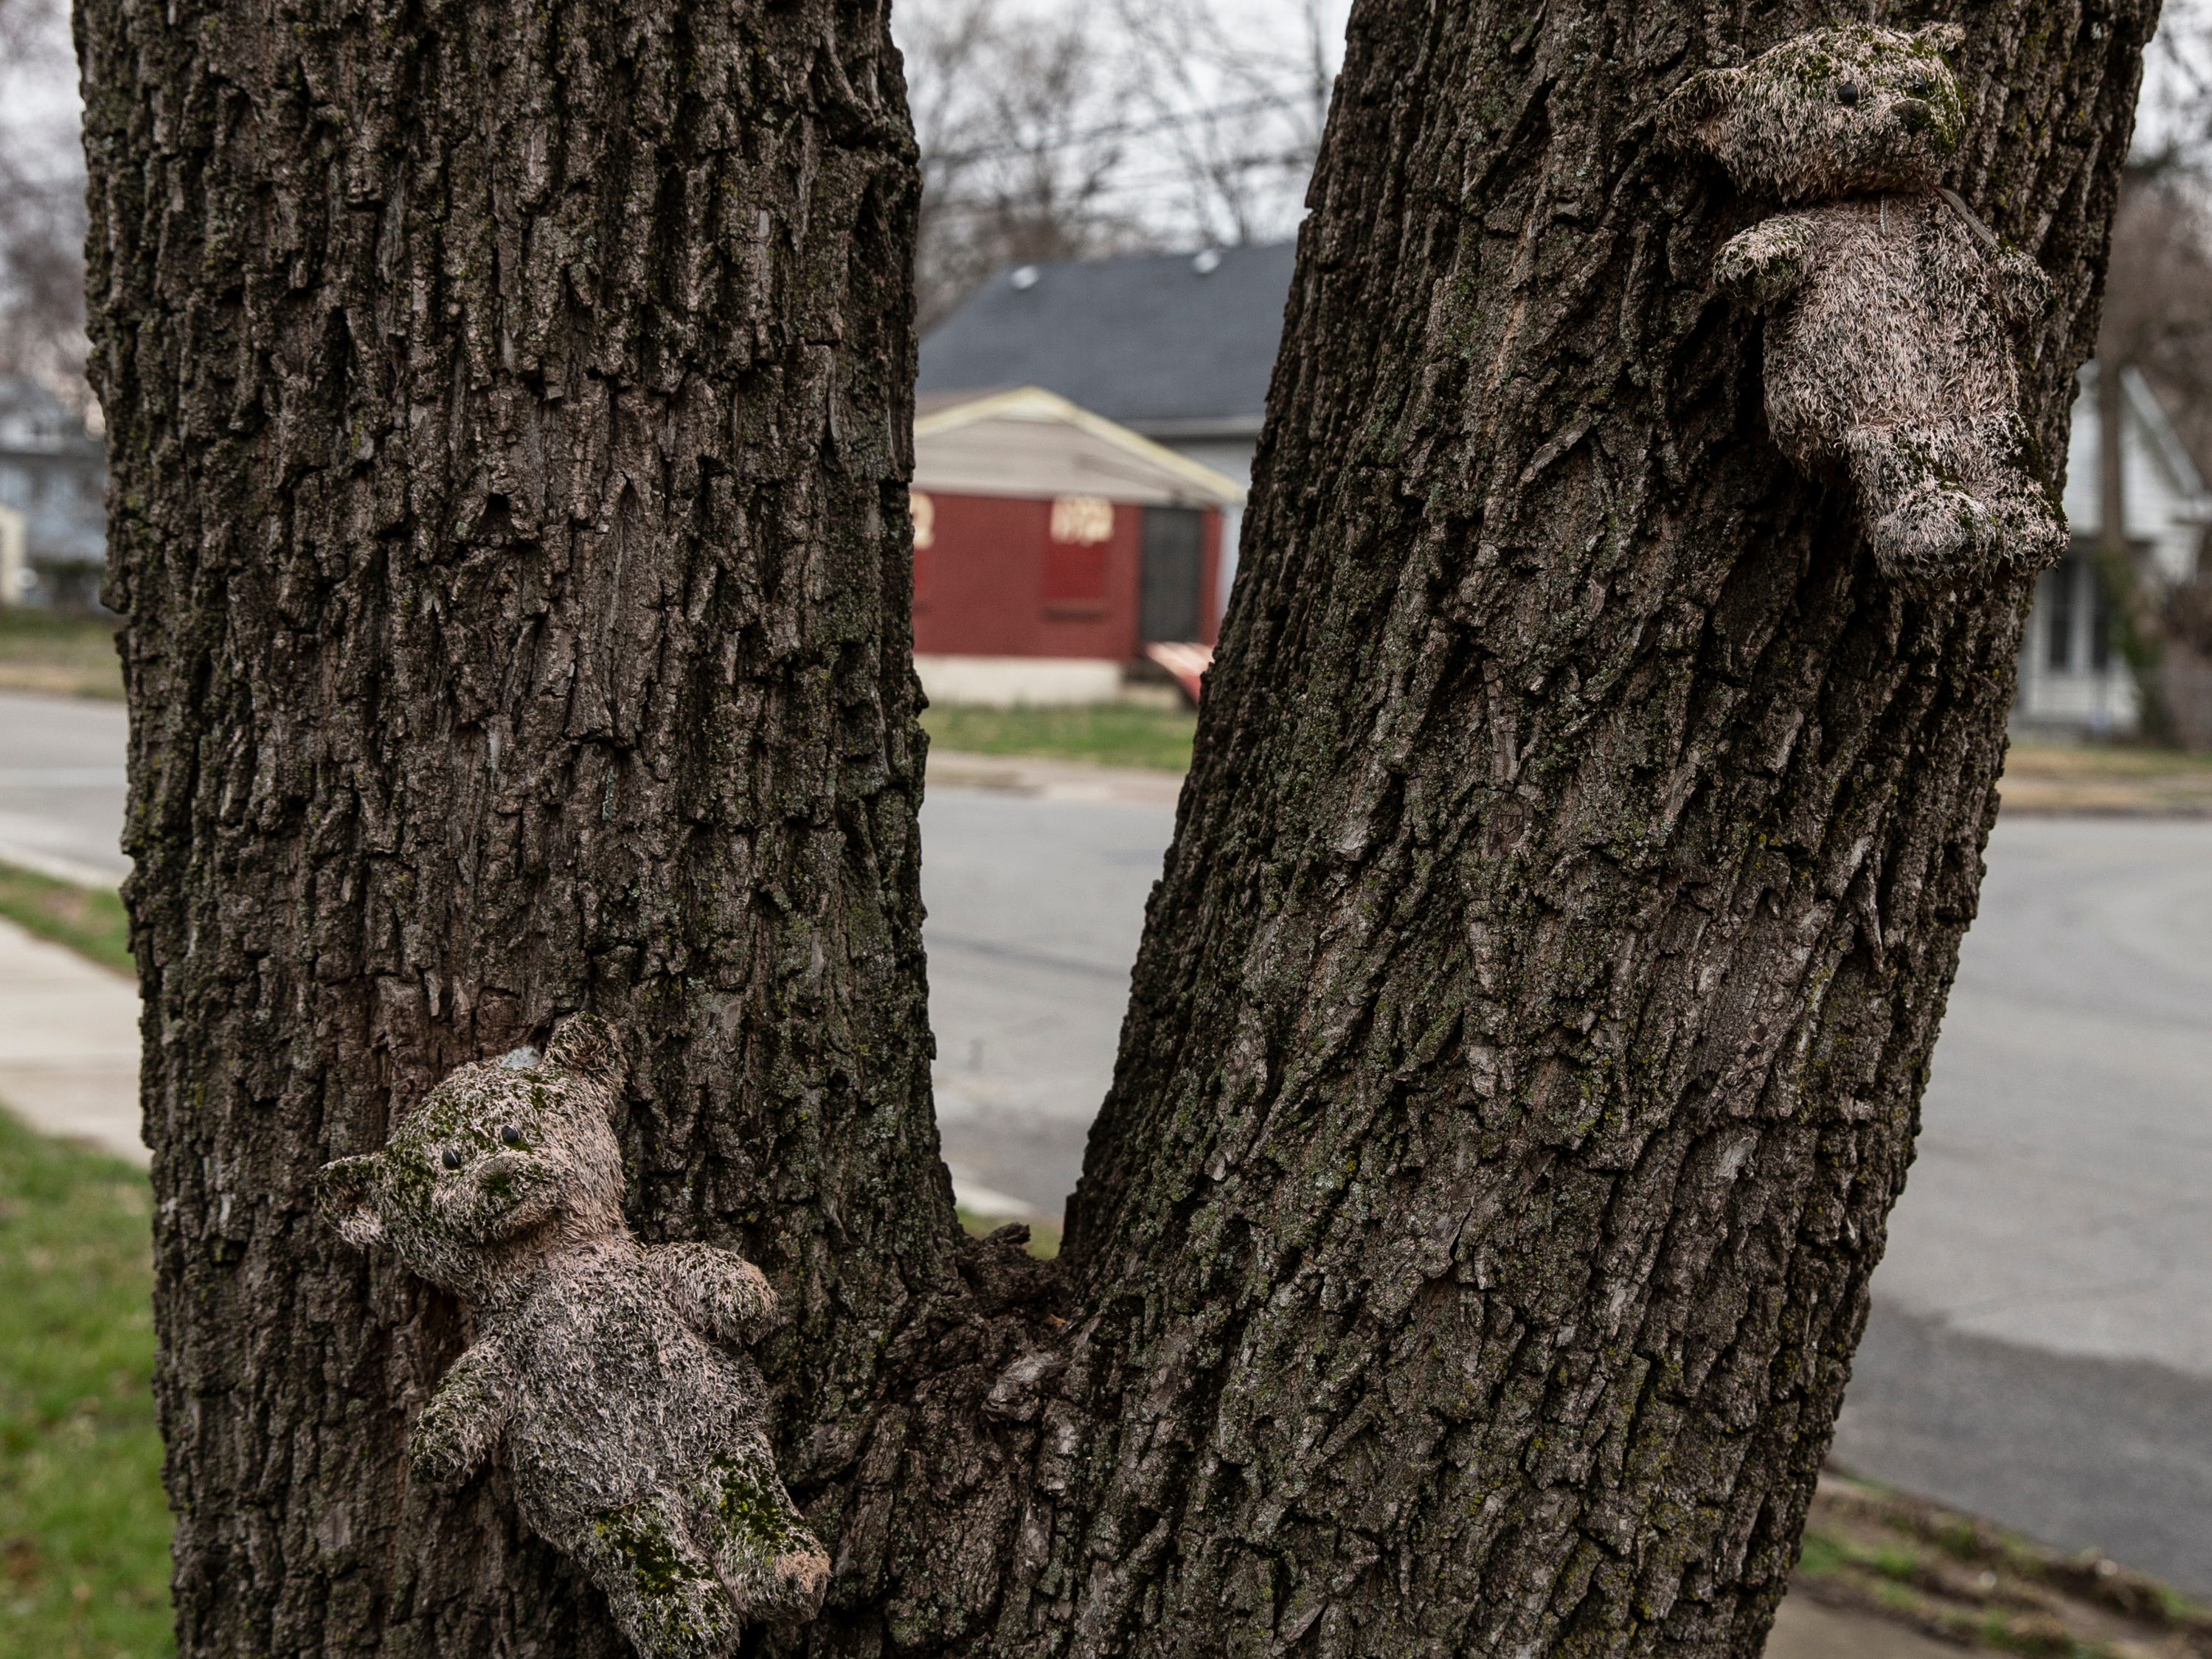 Two bears placed on a tree on Cypress and Wilson Streets following the 2008 deaths of Marc, Jemar, Demar Claybrooks and Aaron Shields, all killed in a car accident. The boys accepted a ride with Herbert Lee in a stolen a car. Lee crashed the car into a tree during a police chase, killing the four youths. March 21, 2019